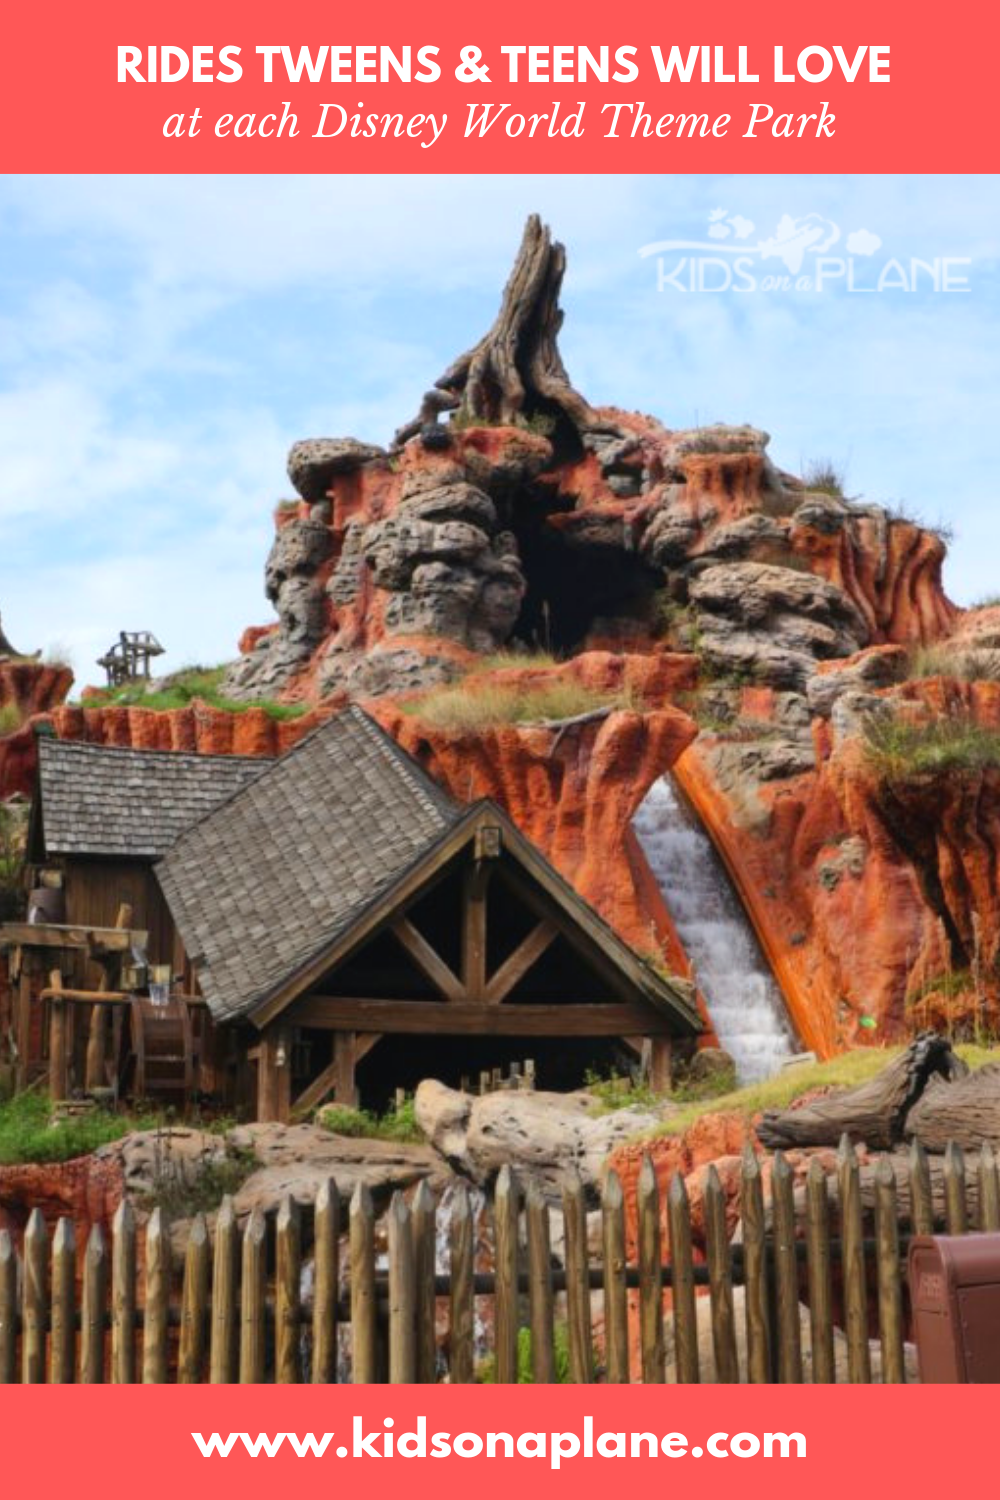 12 Rides Tweens and Teens Will Love at Disney World Orlando Florida